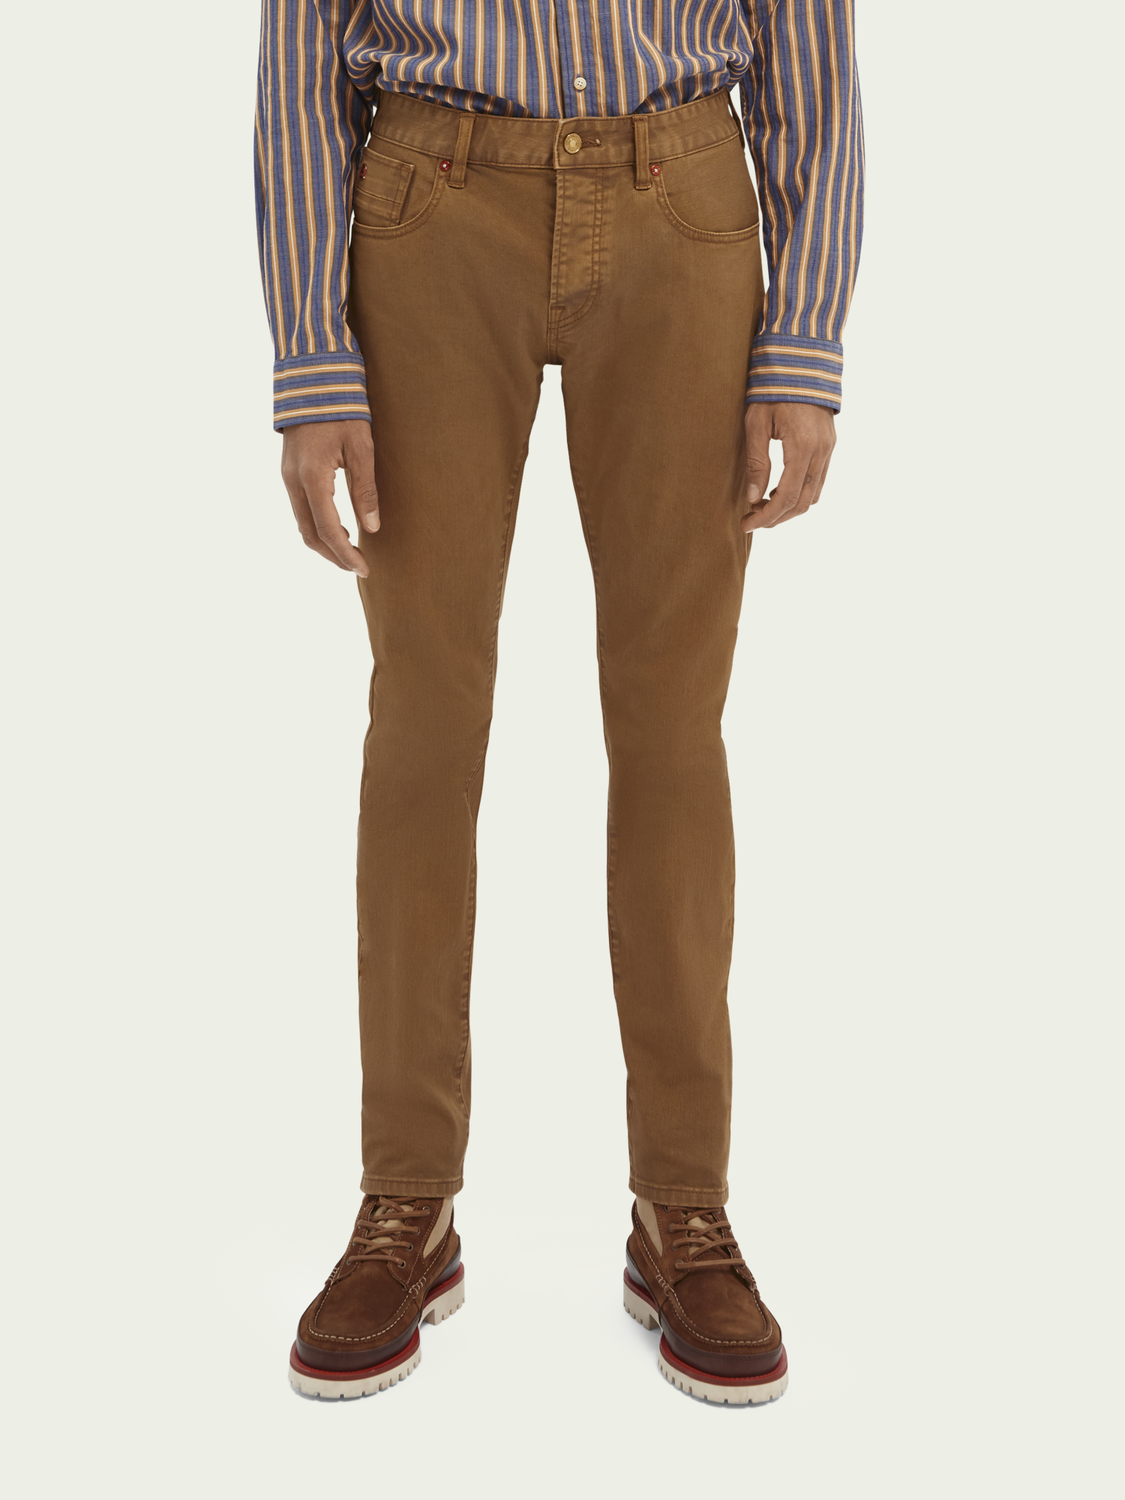 Heren Ralston garment-dyed mid rise jeans